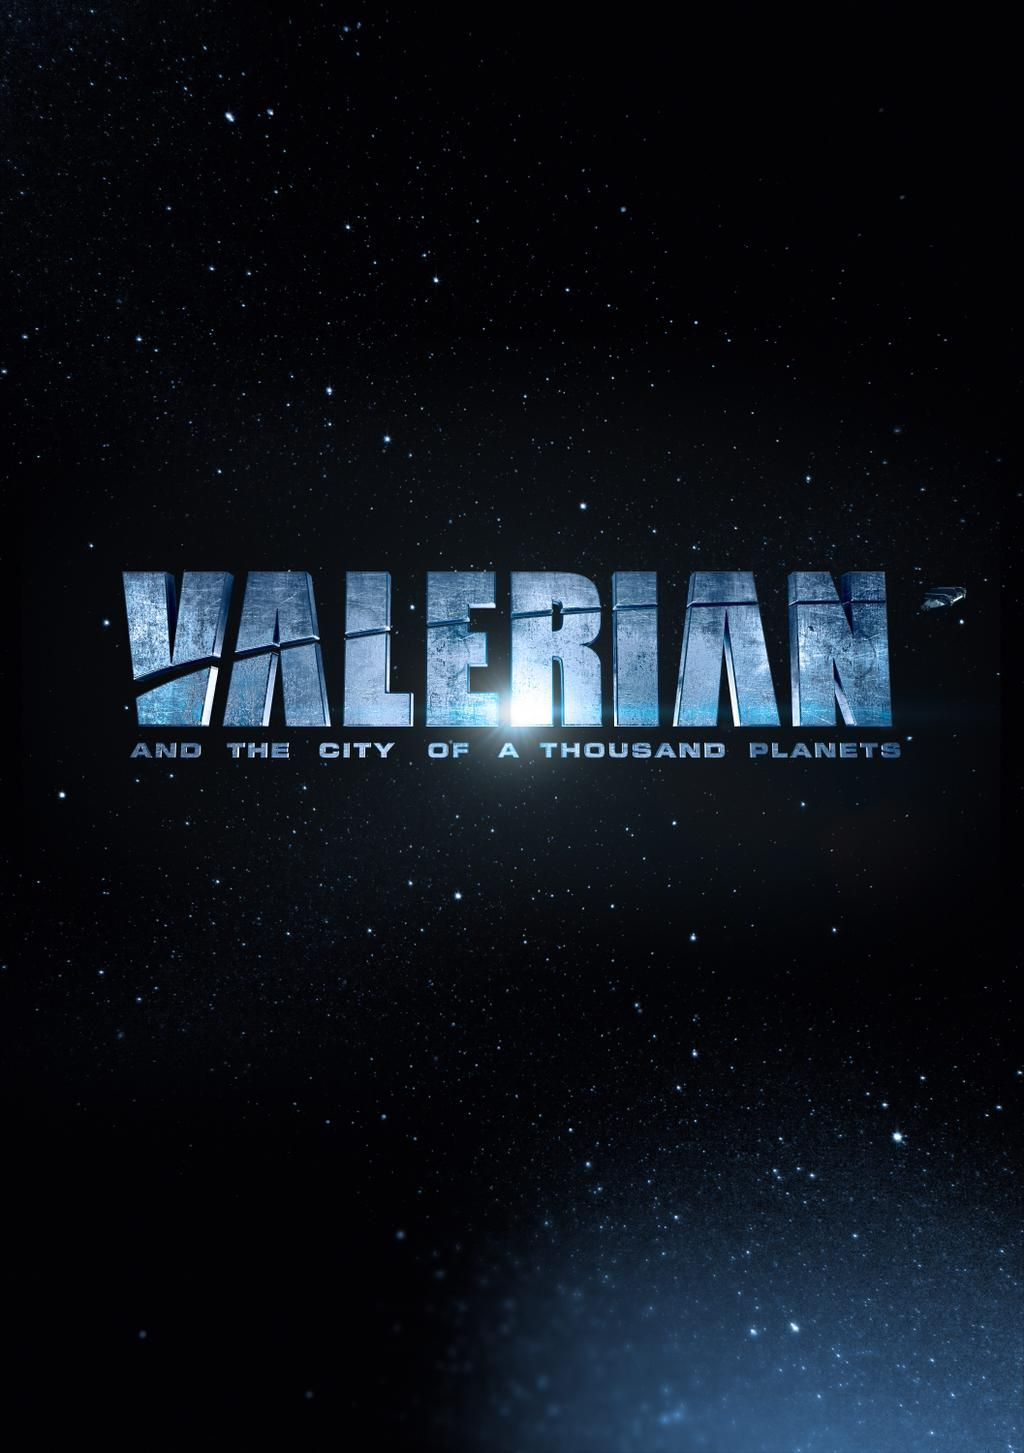 valerian-movie-poster